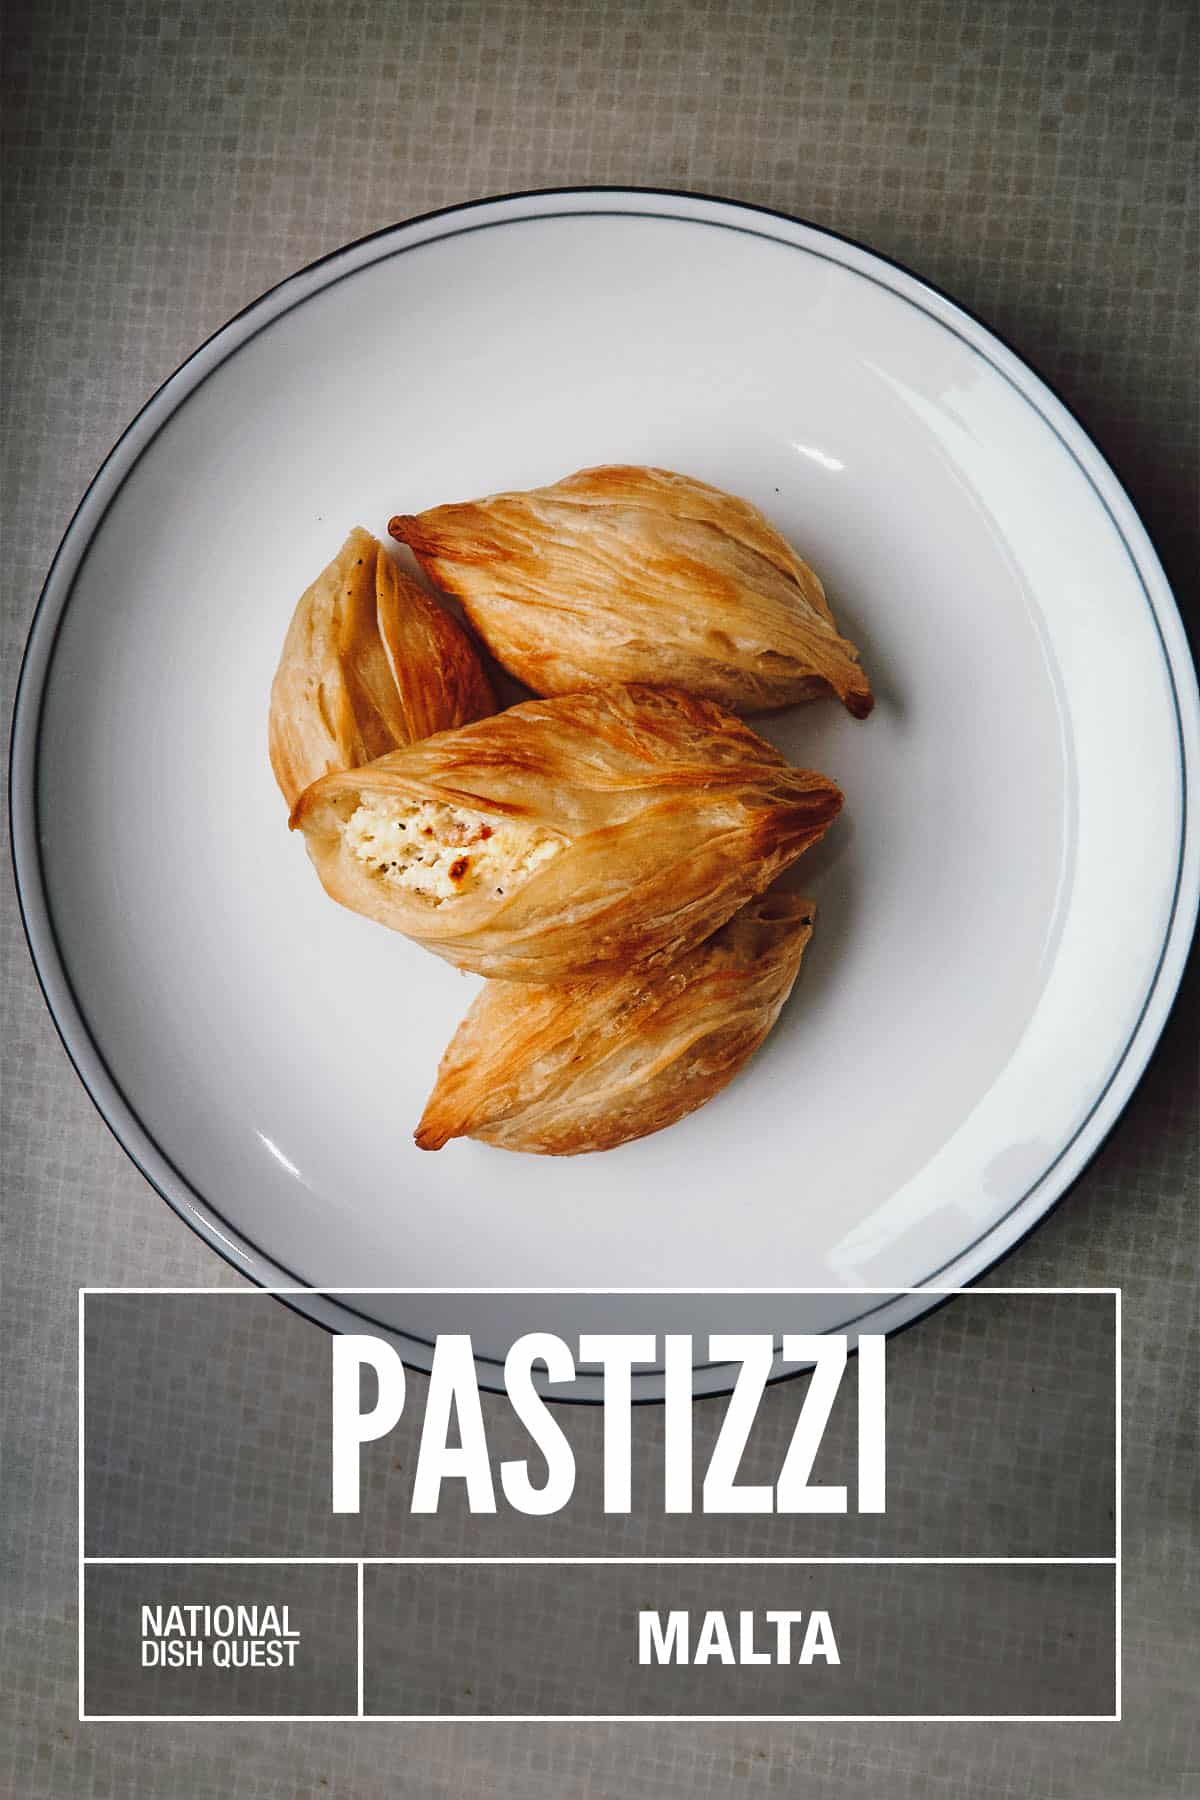 Plate of pastizzi